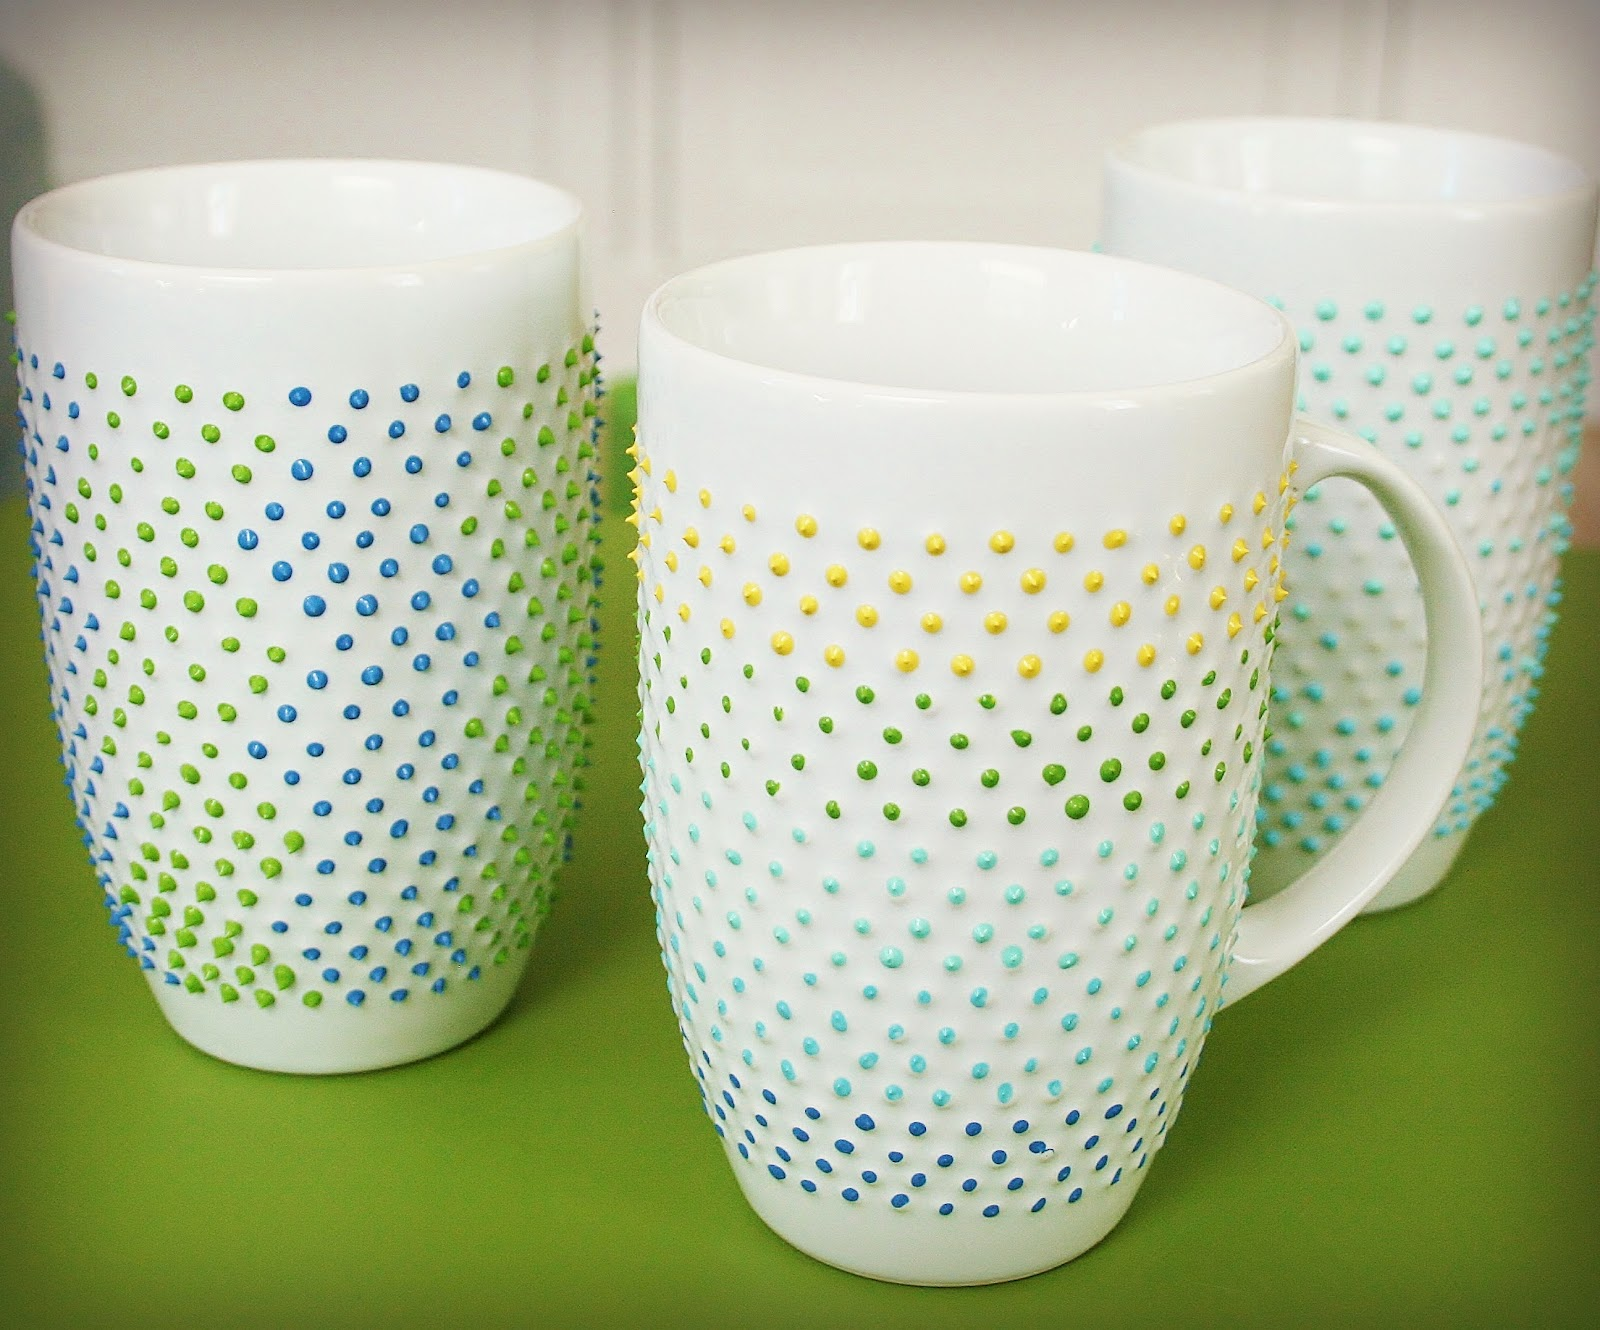 Easy painted pottery designs the image for Mug painting designs